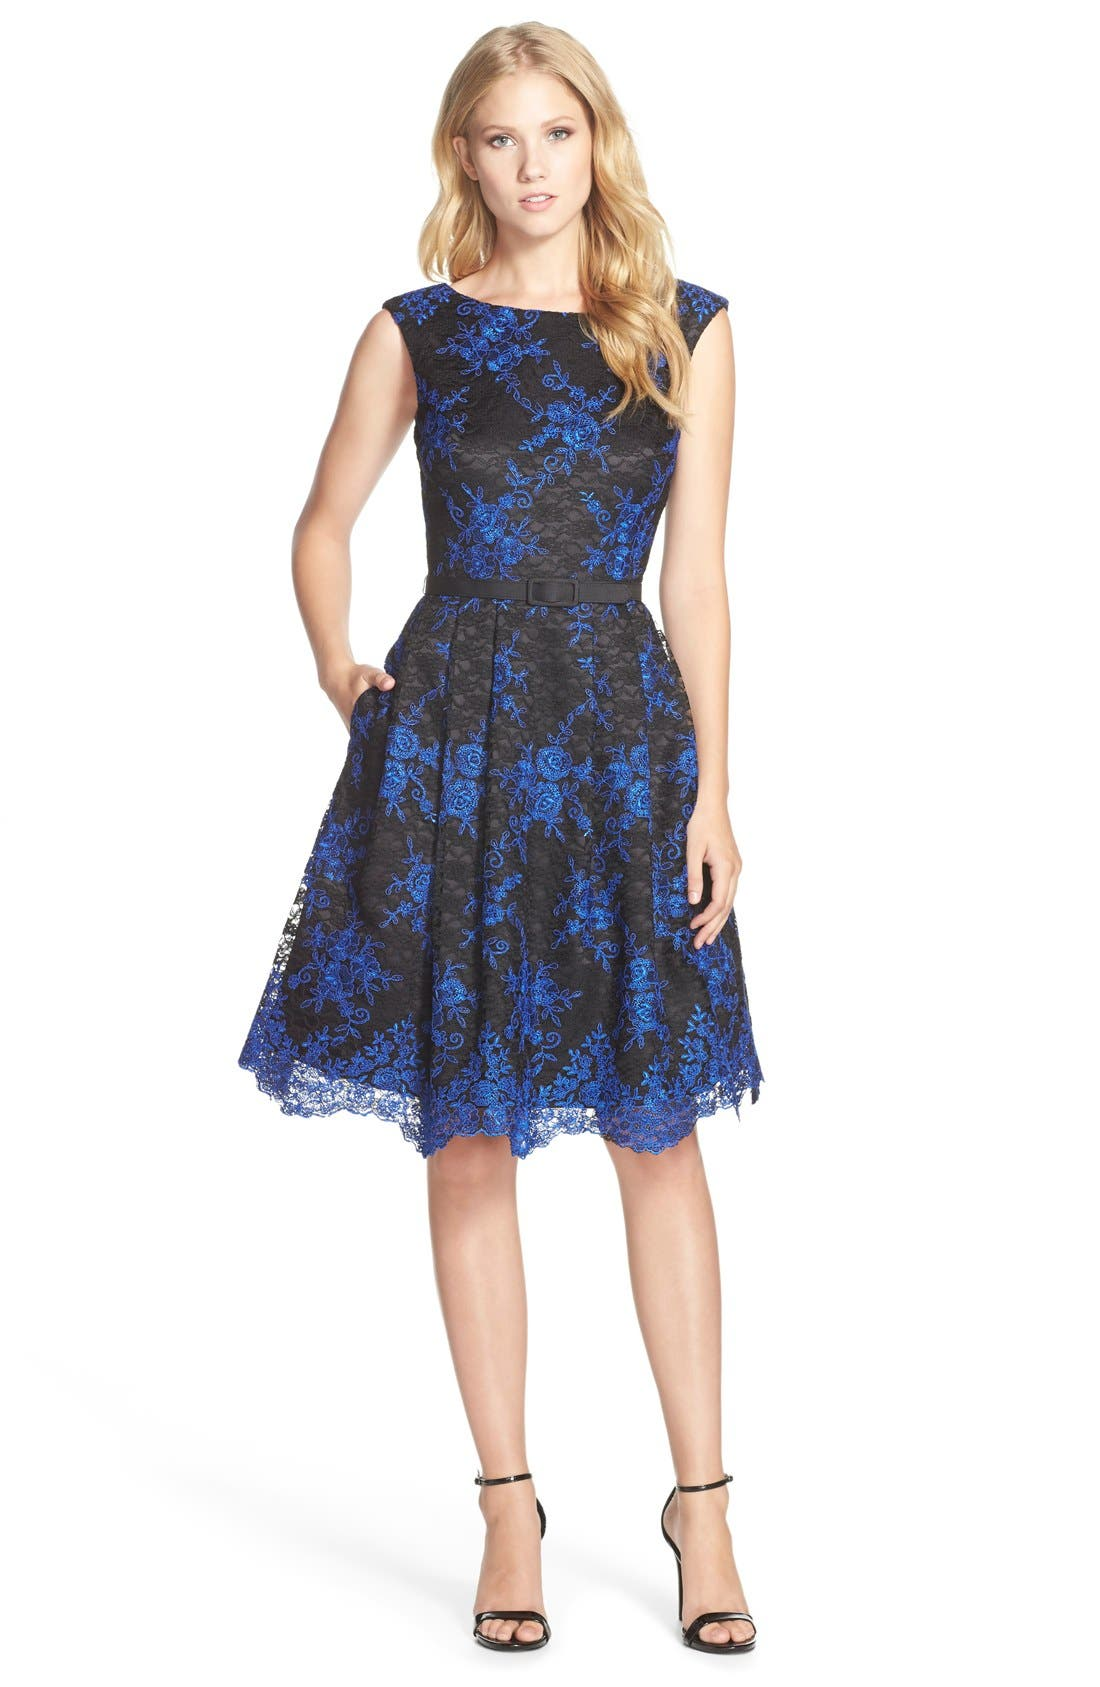 Alternate Image 1 Selected - Eliza J Belted Embroidered Lace Fit & Flare Dress (Regular & Petite)